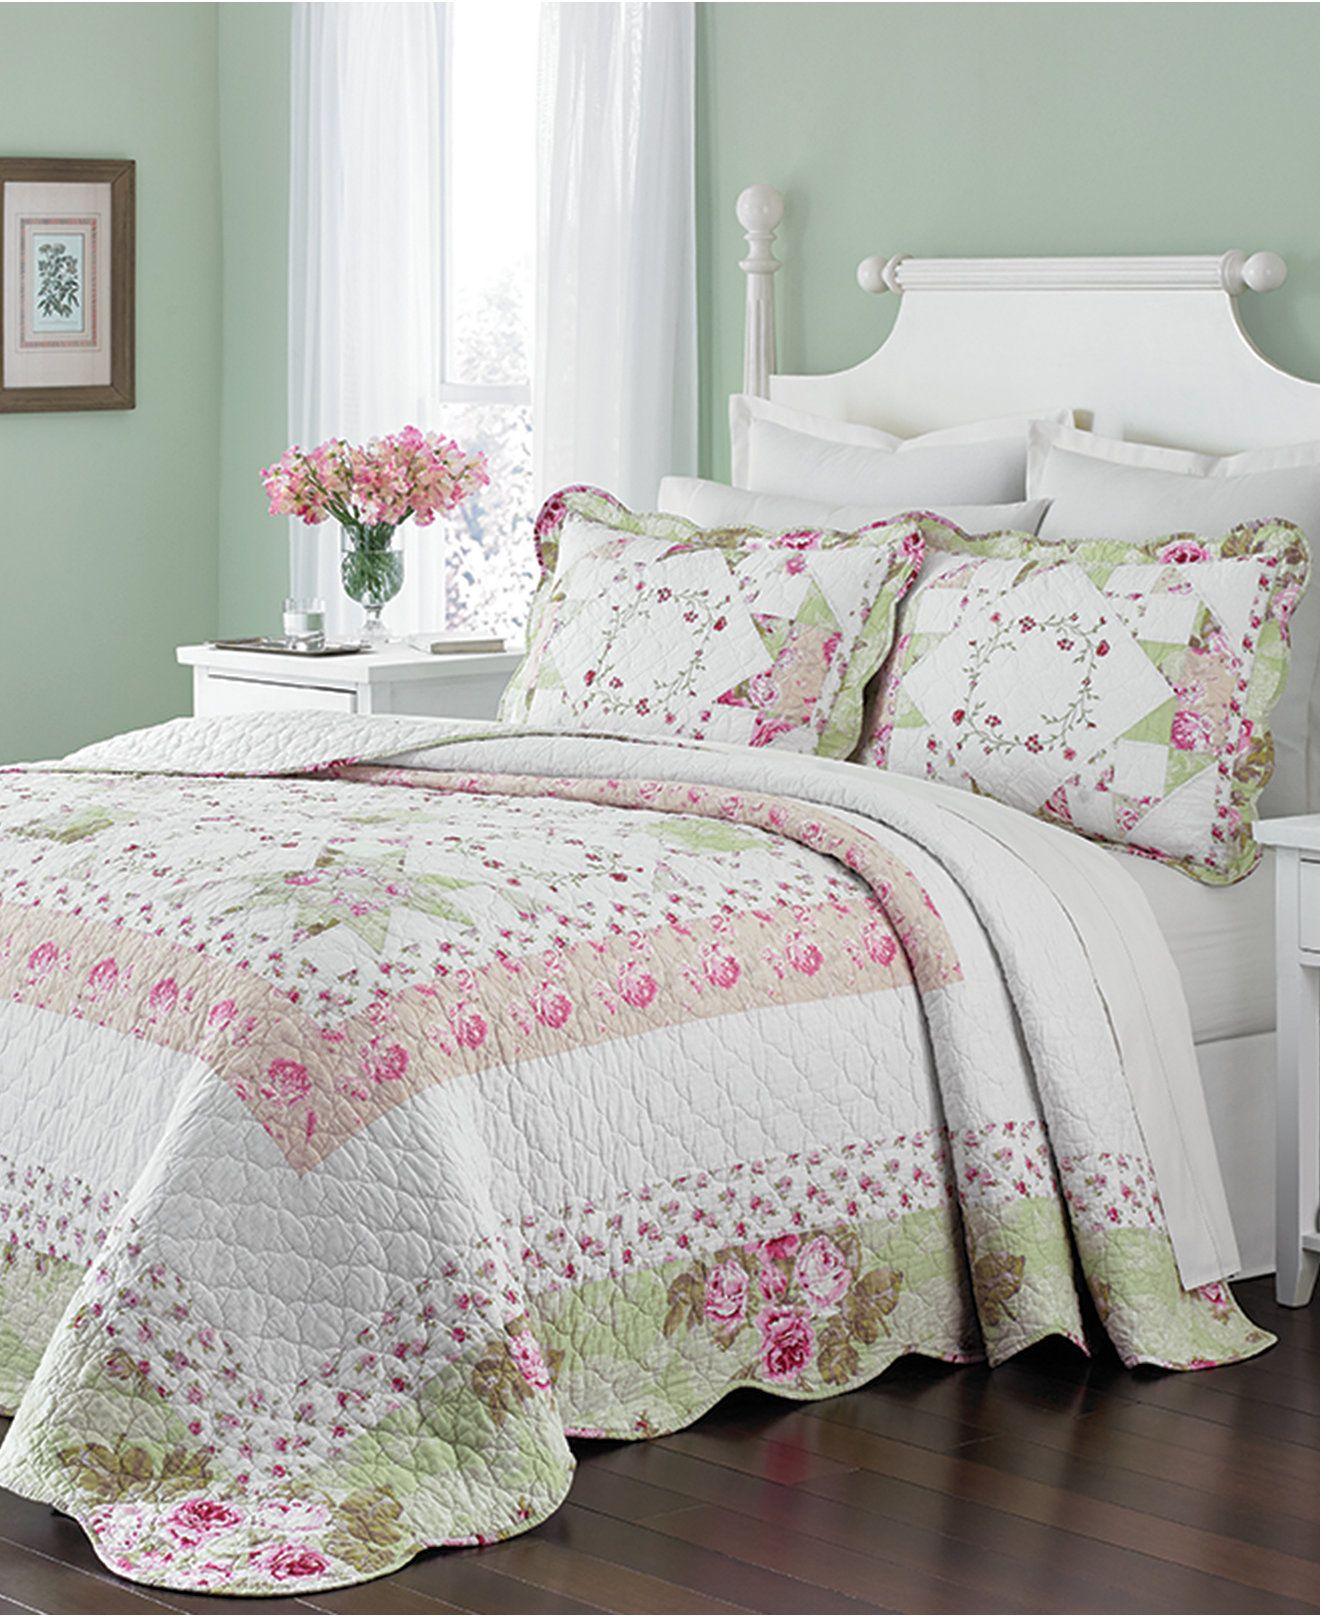 Martha Stewart Collection Emmeline Bedspreads Only At Macy S Quilts Bedspreads Bed Bath Macy S Bed Spreads Shabby Chic Bed Linen Queen Bedspread